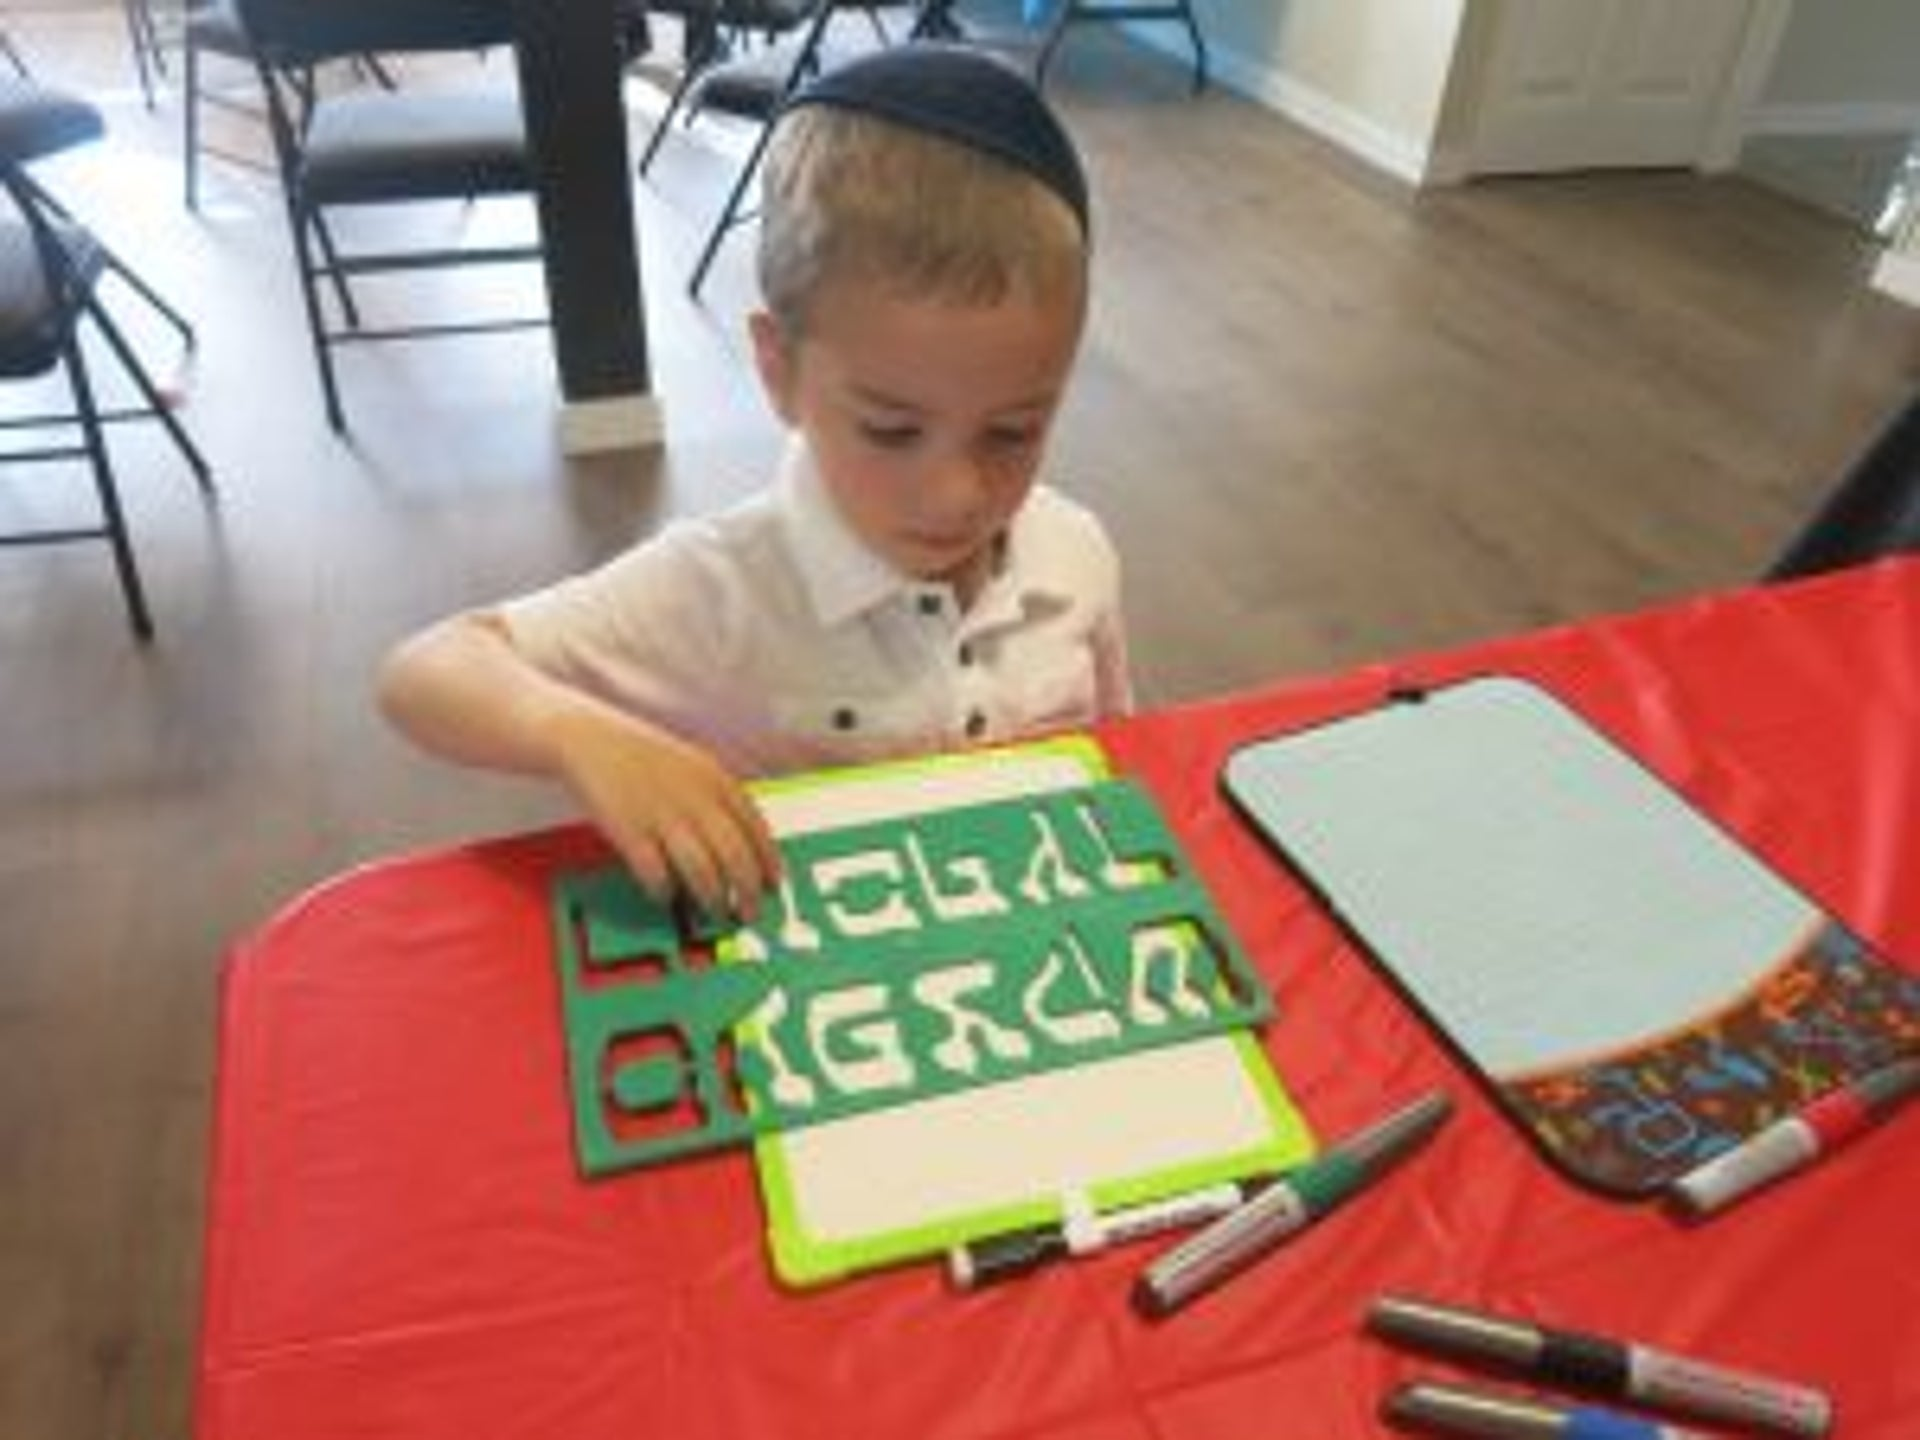 A Hebrew-school class in Nanaimo, British Columbia. A young boy uses a stencil to draw Hebrew letters.